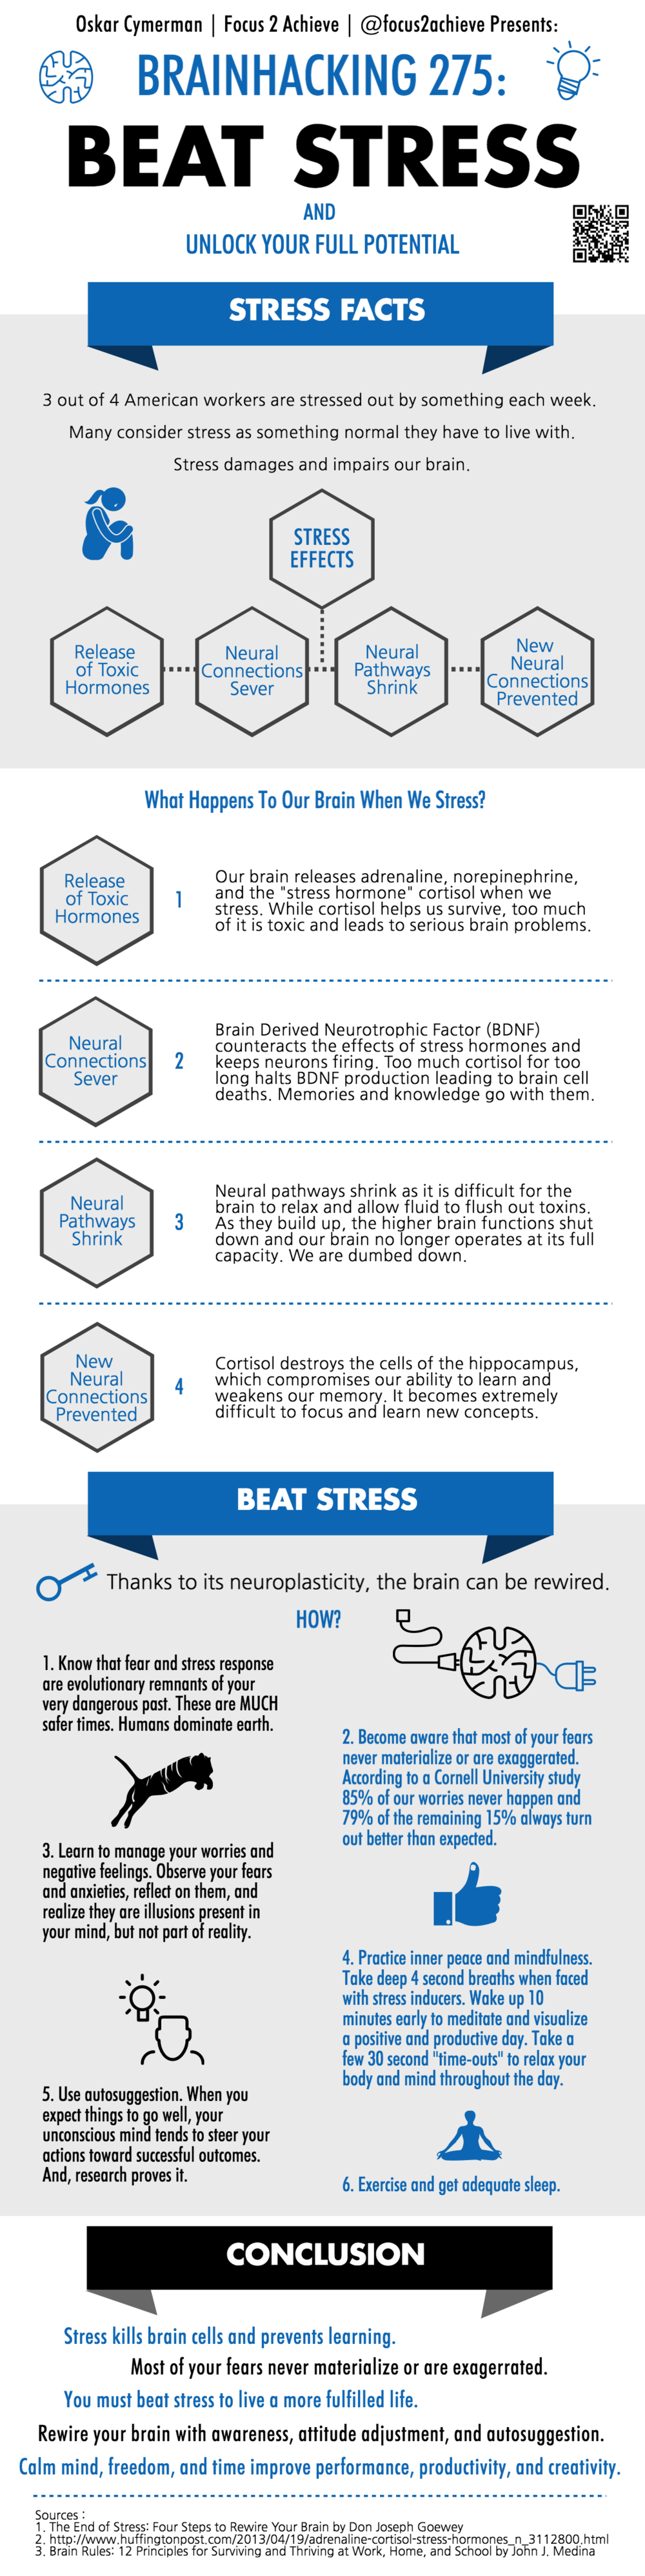 Beat Stress Infographic